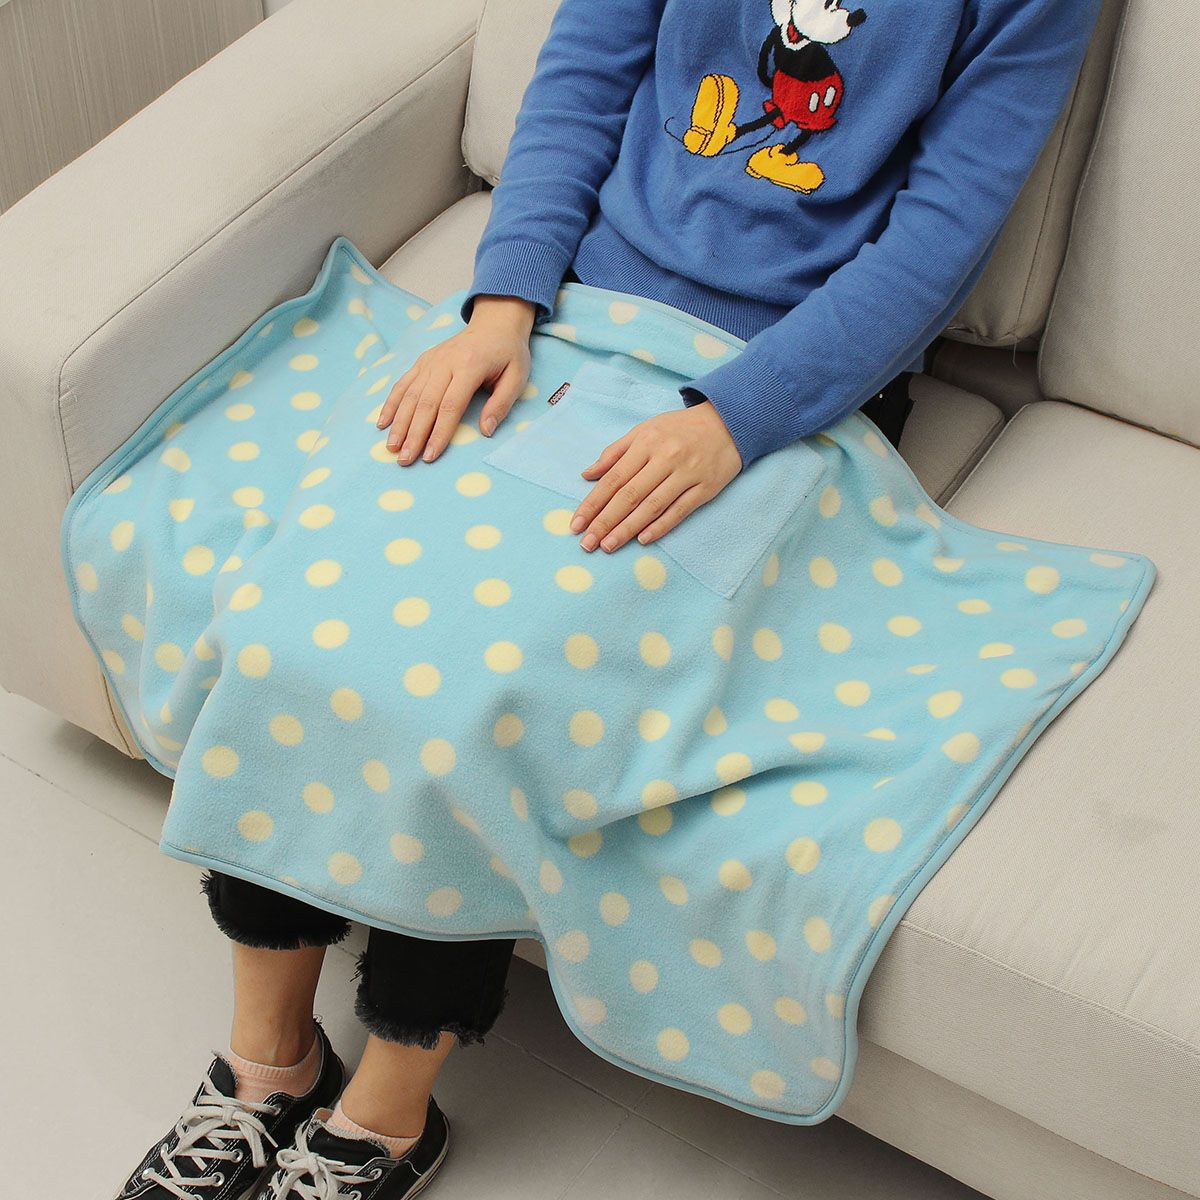 90x62cm USB Electric Heating Blanket Heated Shawl 5V Winter Portable Blanket for Office Home Mobile Heating Shawl(China)